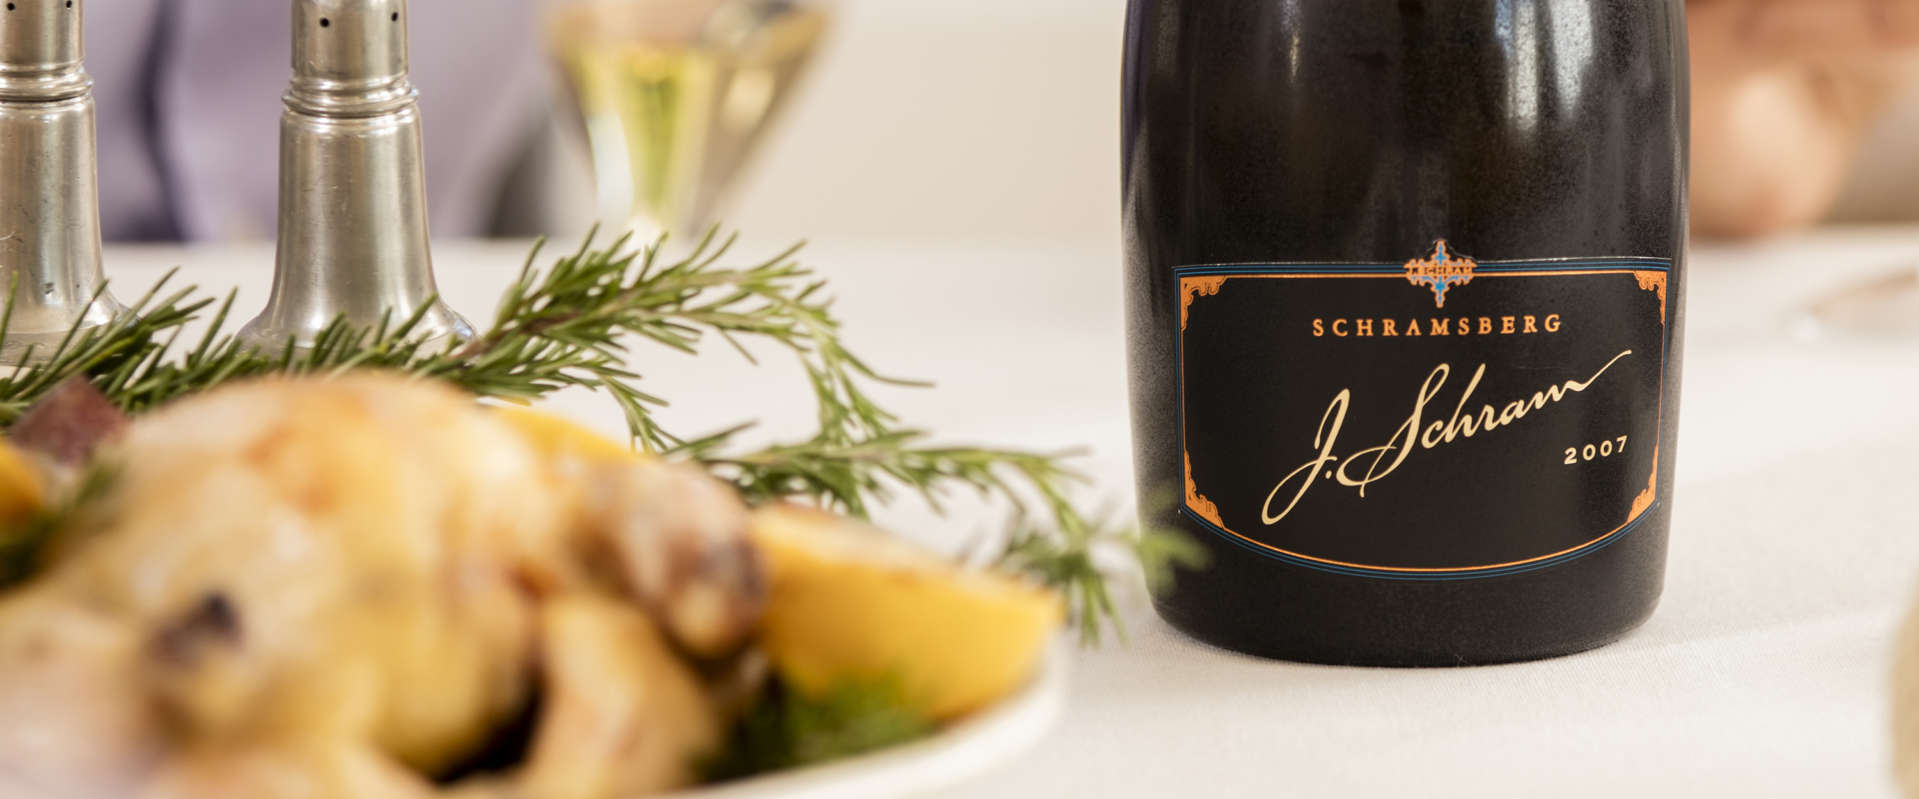 Schramsberg 2007 J. Schram sparkling wine paired with rosemary lemon chicken